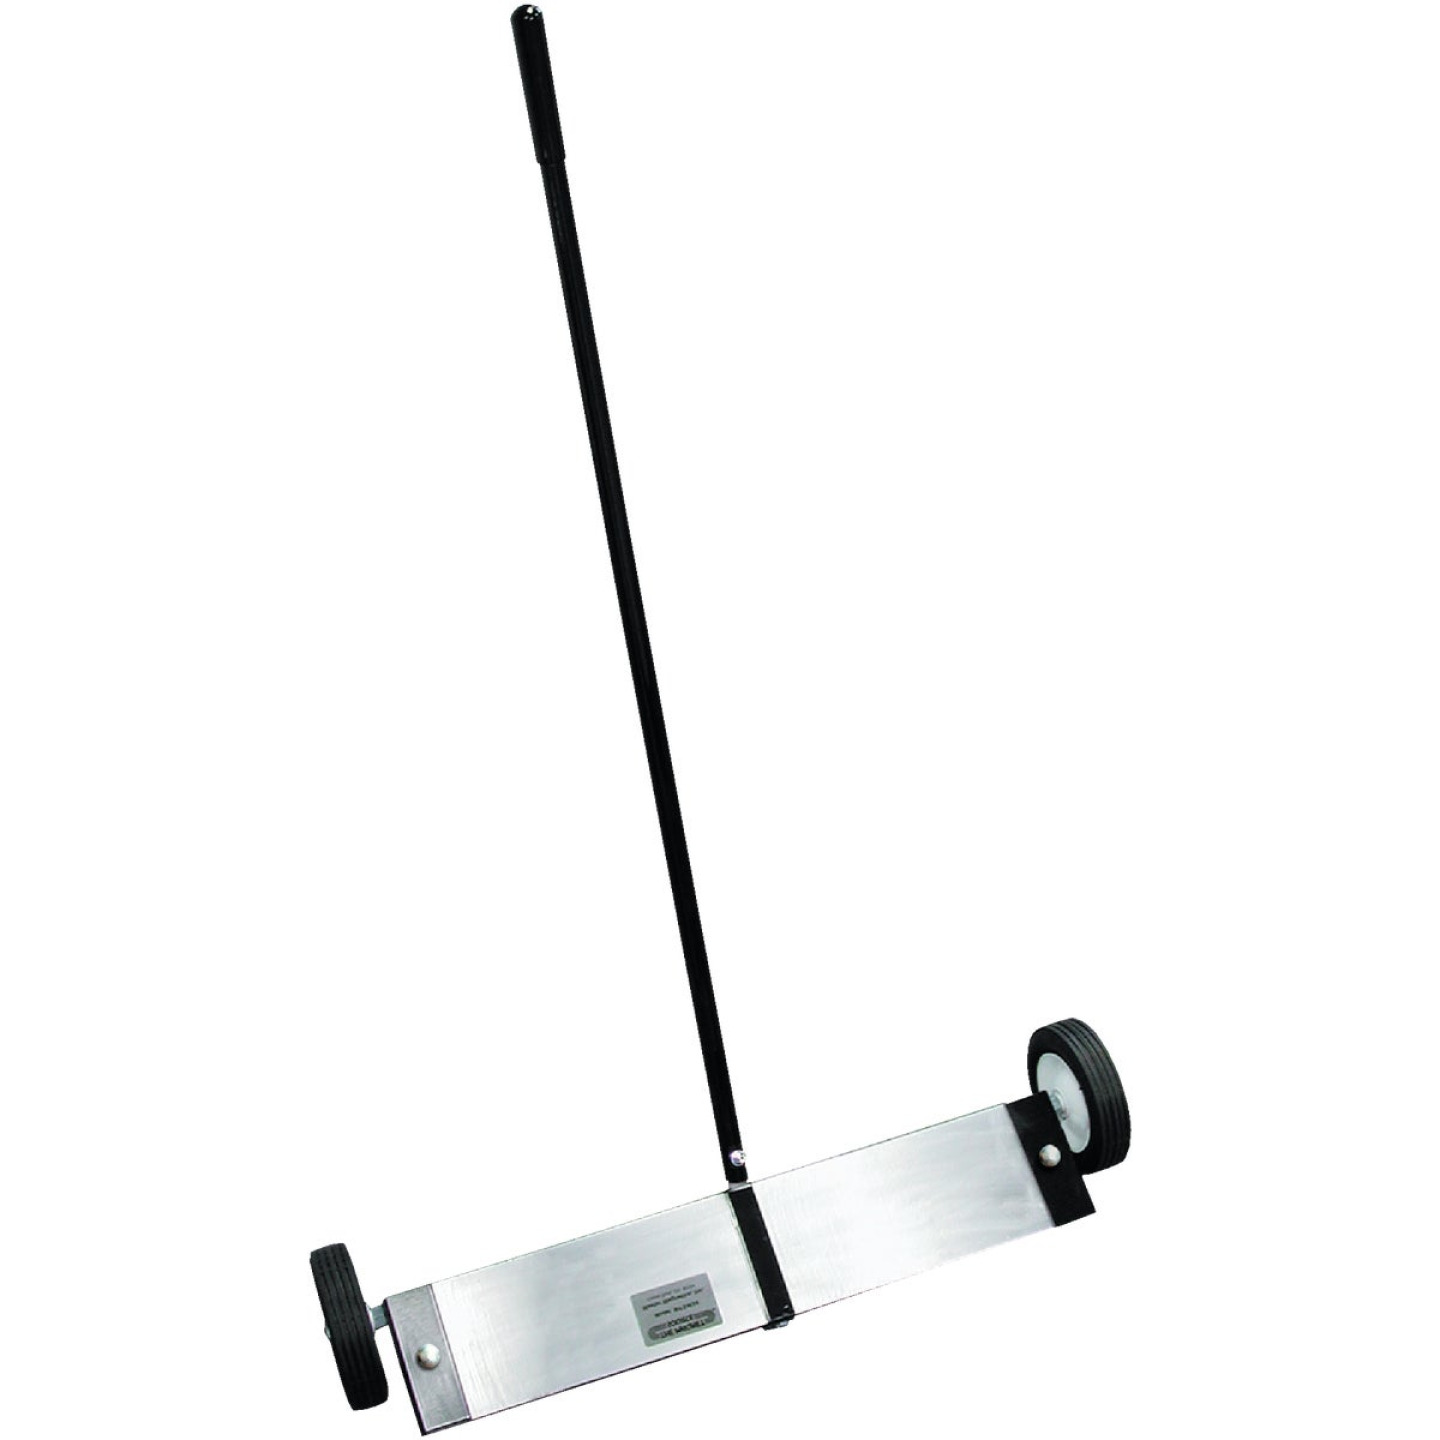 Master Magnetics 24 in. Magnetic Floor Sweeper Image 1